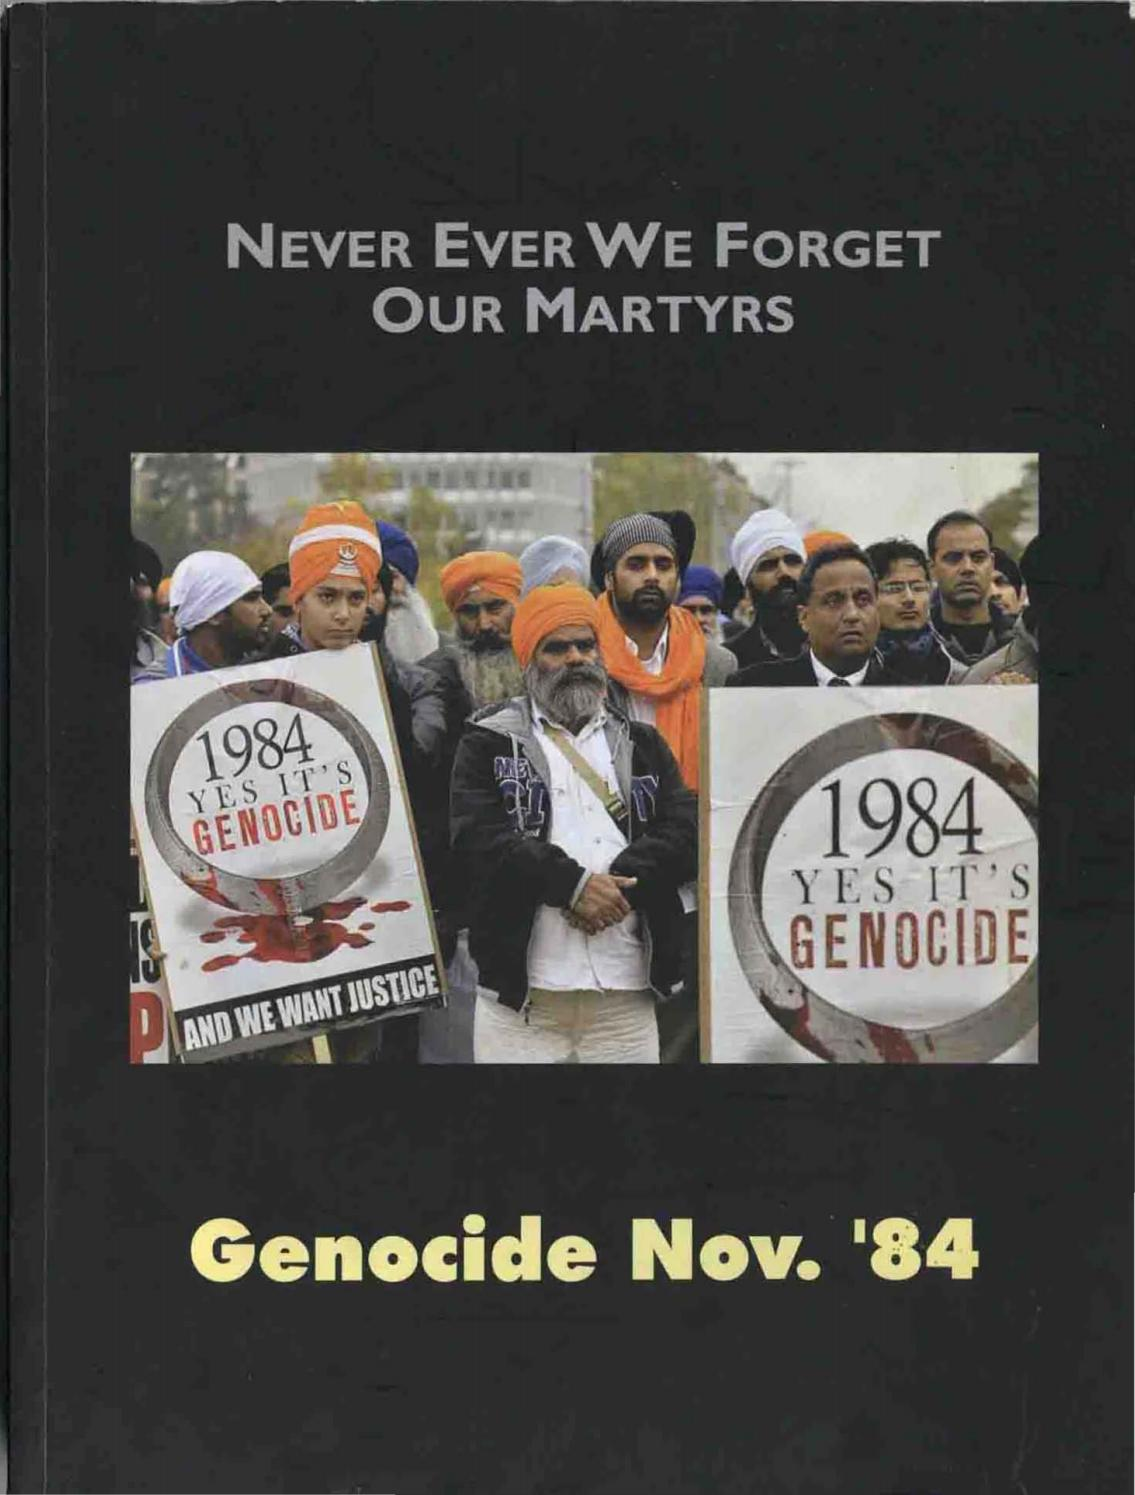 Never Ever We Forget Our Martyrs - Genocide Nov 1984 by Sikh